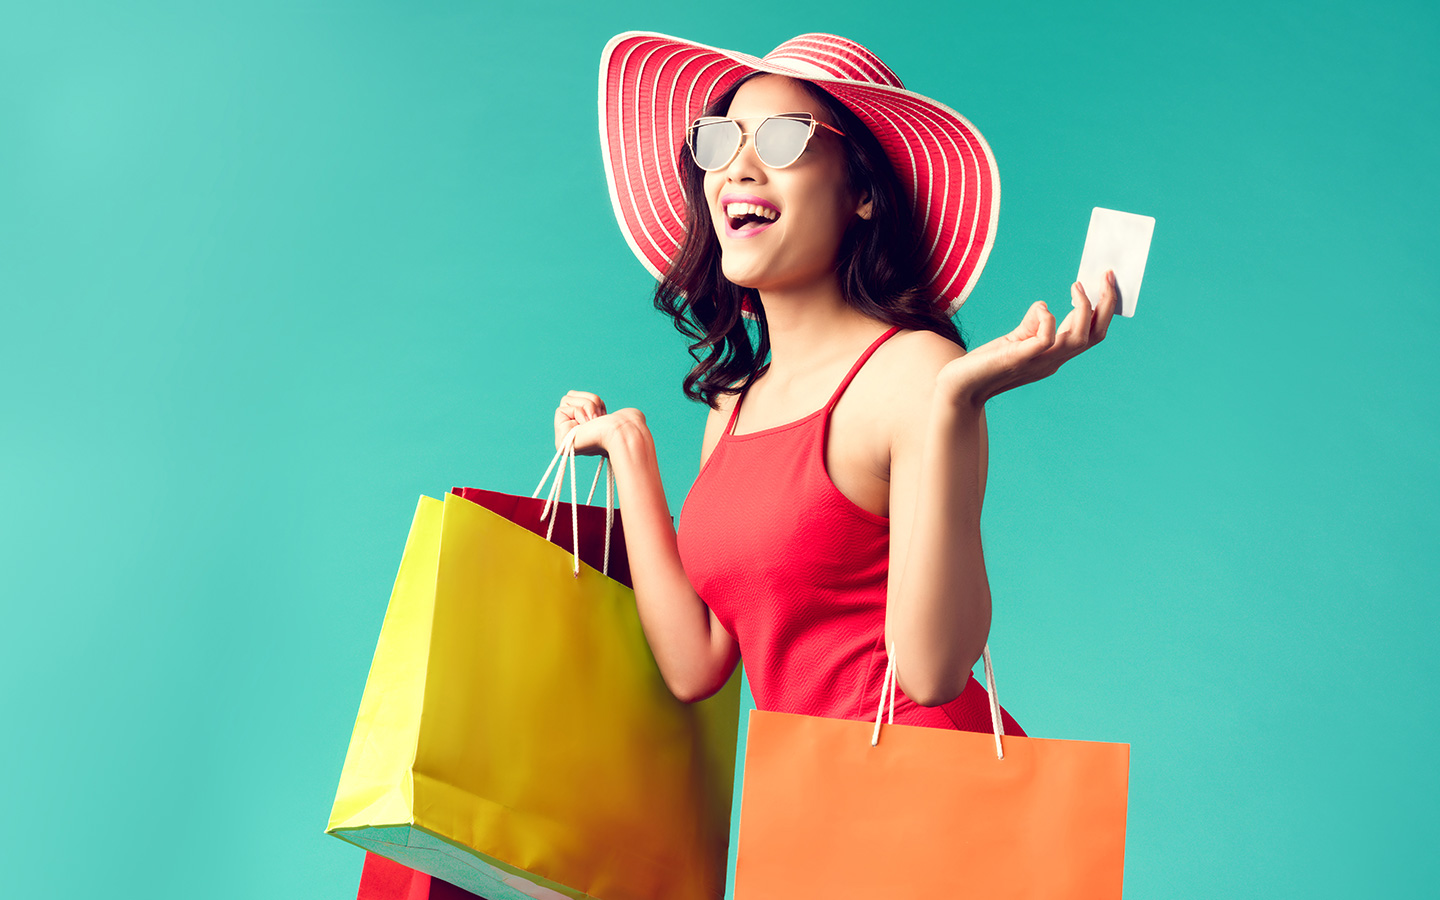 Happy woman holding credit card and shopping bags, going to one of the events in Dubai August 2019